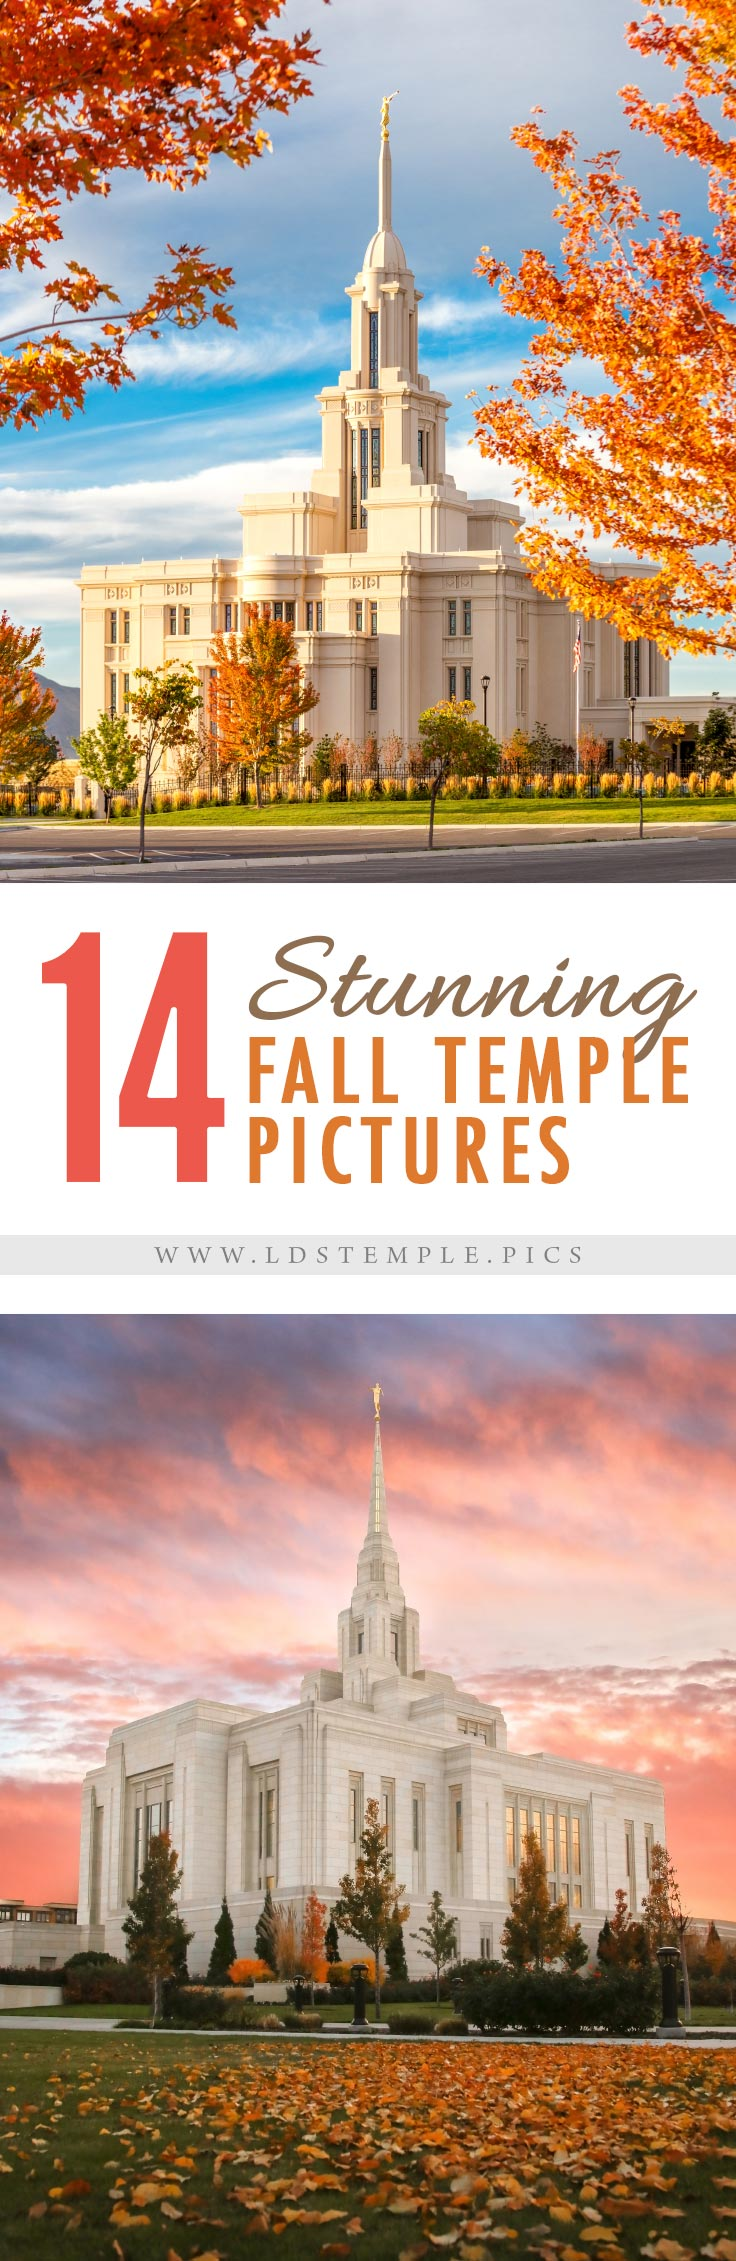 14 Fantastic Fall Temple Pictures) | As this wonderful fall season draws to a close before winter arrives, we wanted to share this amazing collection of fall temple pictures with you!